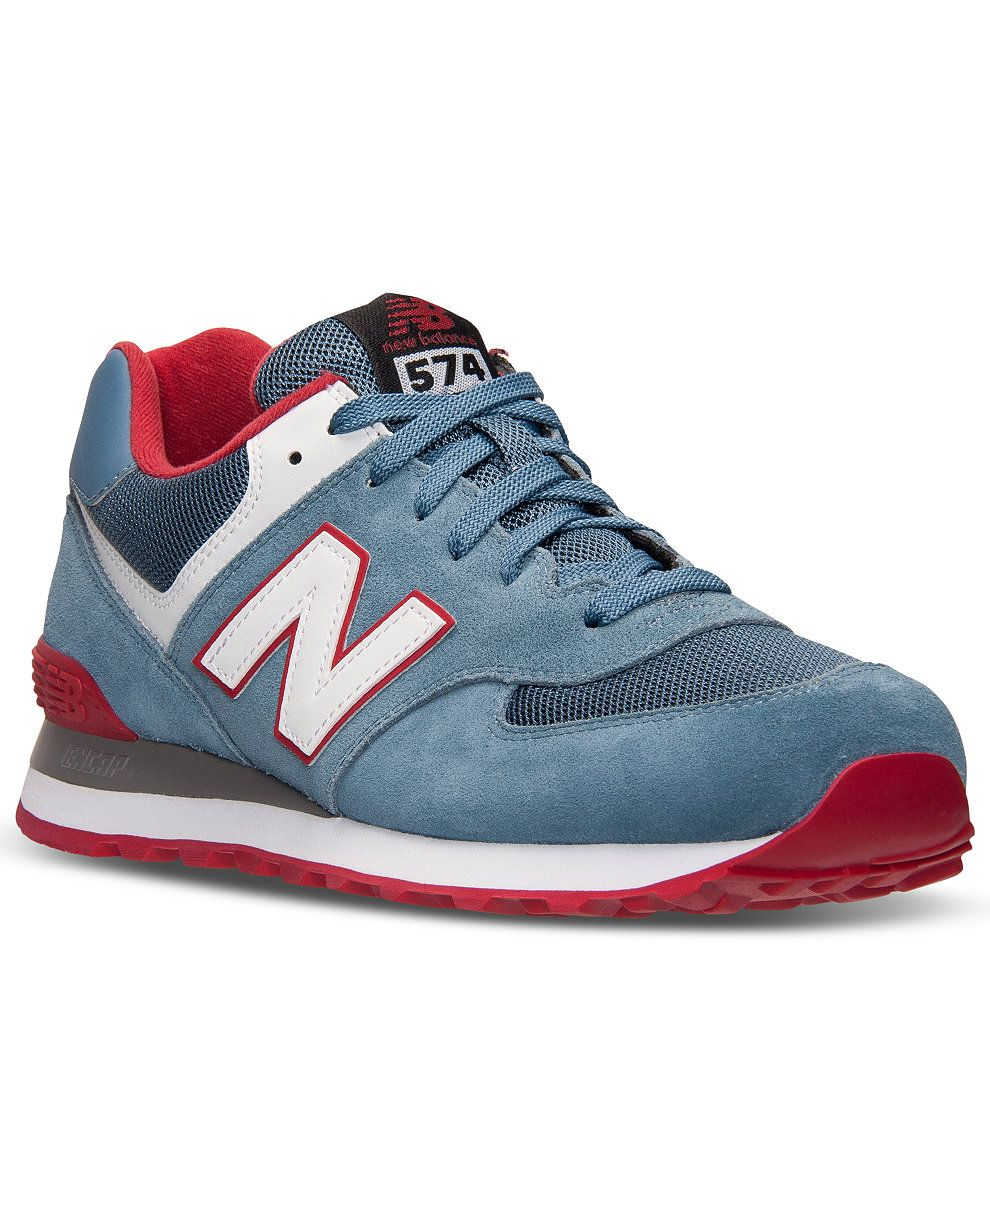 New Balance Men's 574 Core Plus Casual Sneakers from